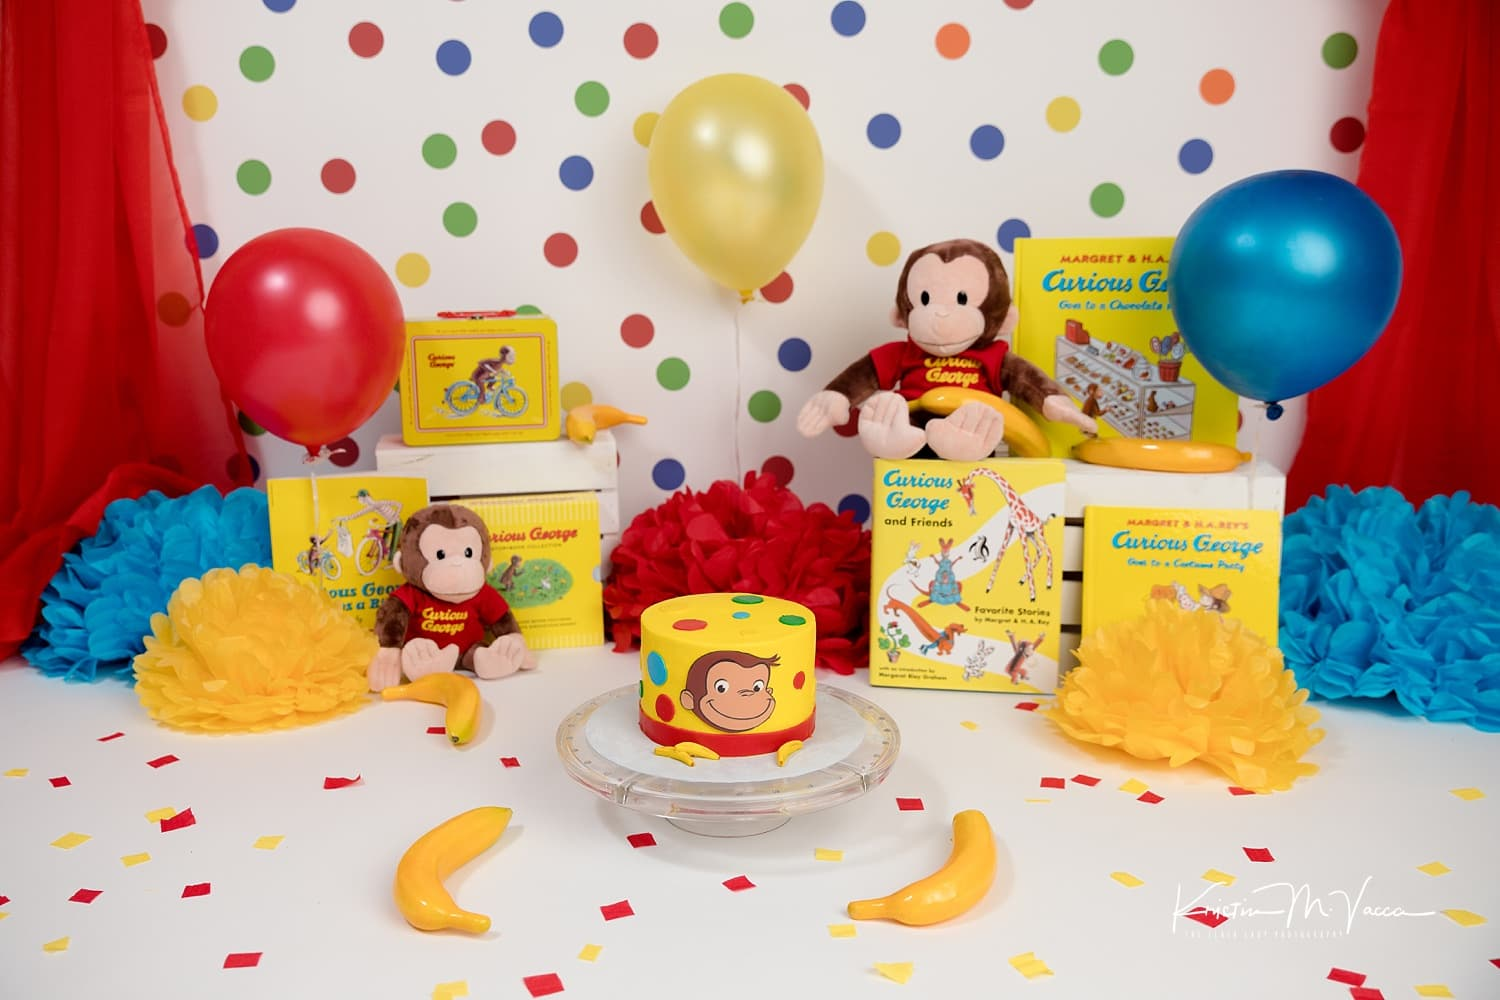 Wondrous Devin Curious George Cake Smash South Windsor Ct Cake Smash Funny Birthday Cards Online Sheoxdamsfinfo